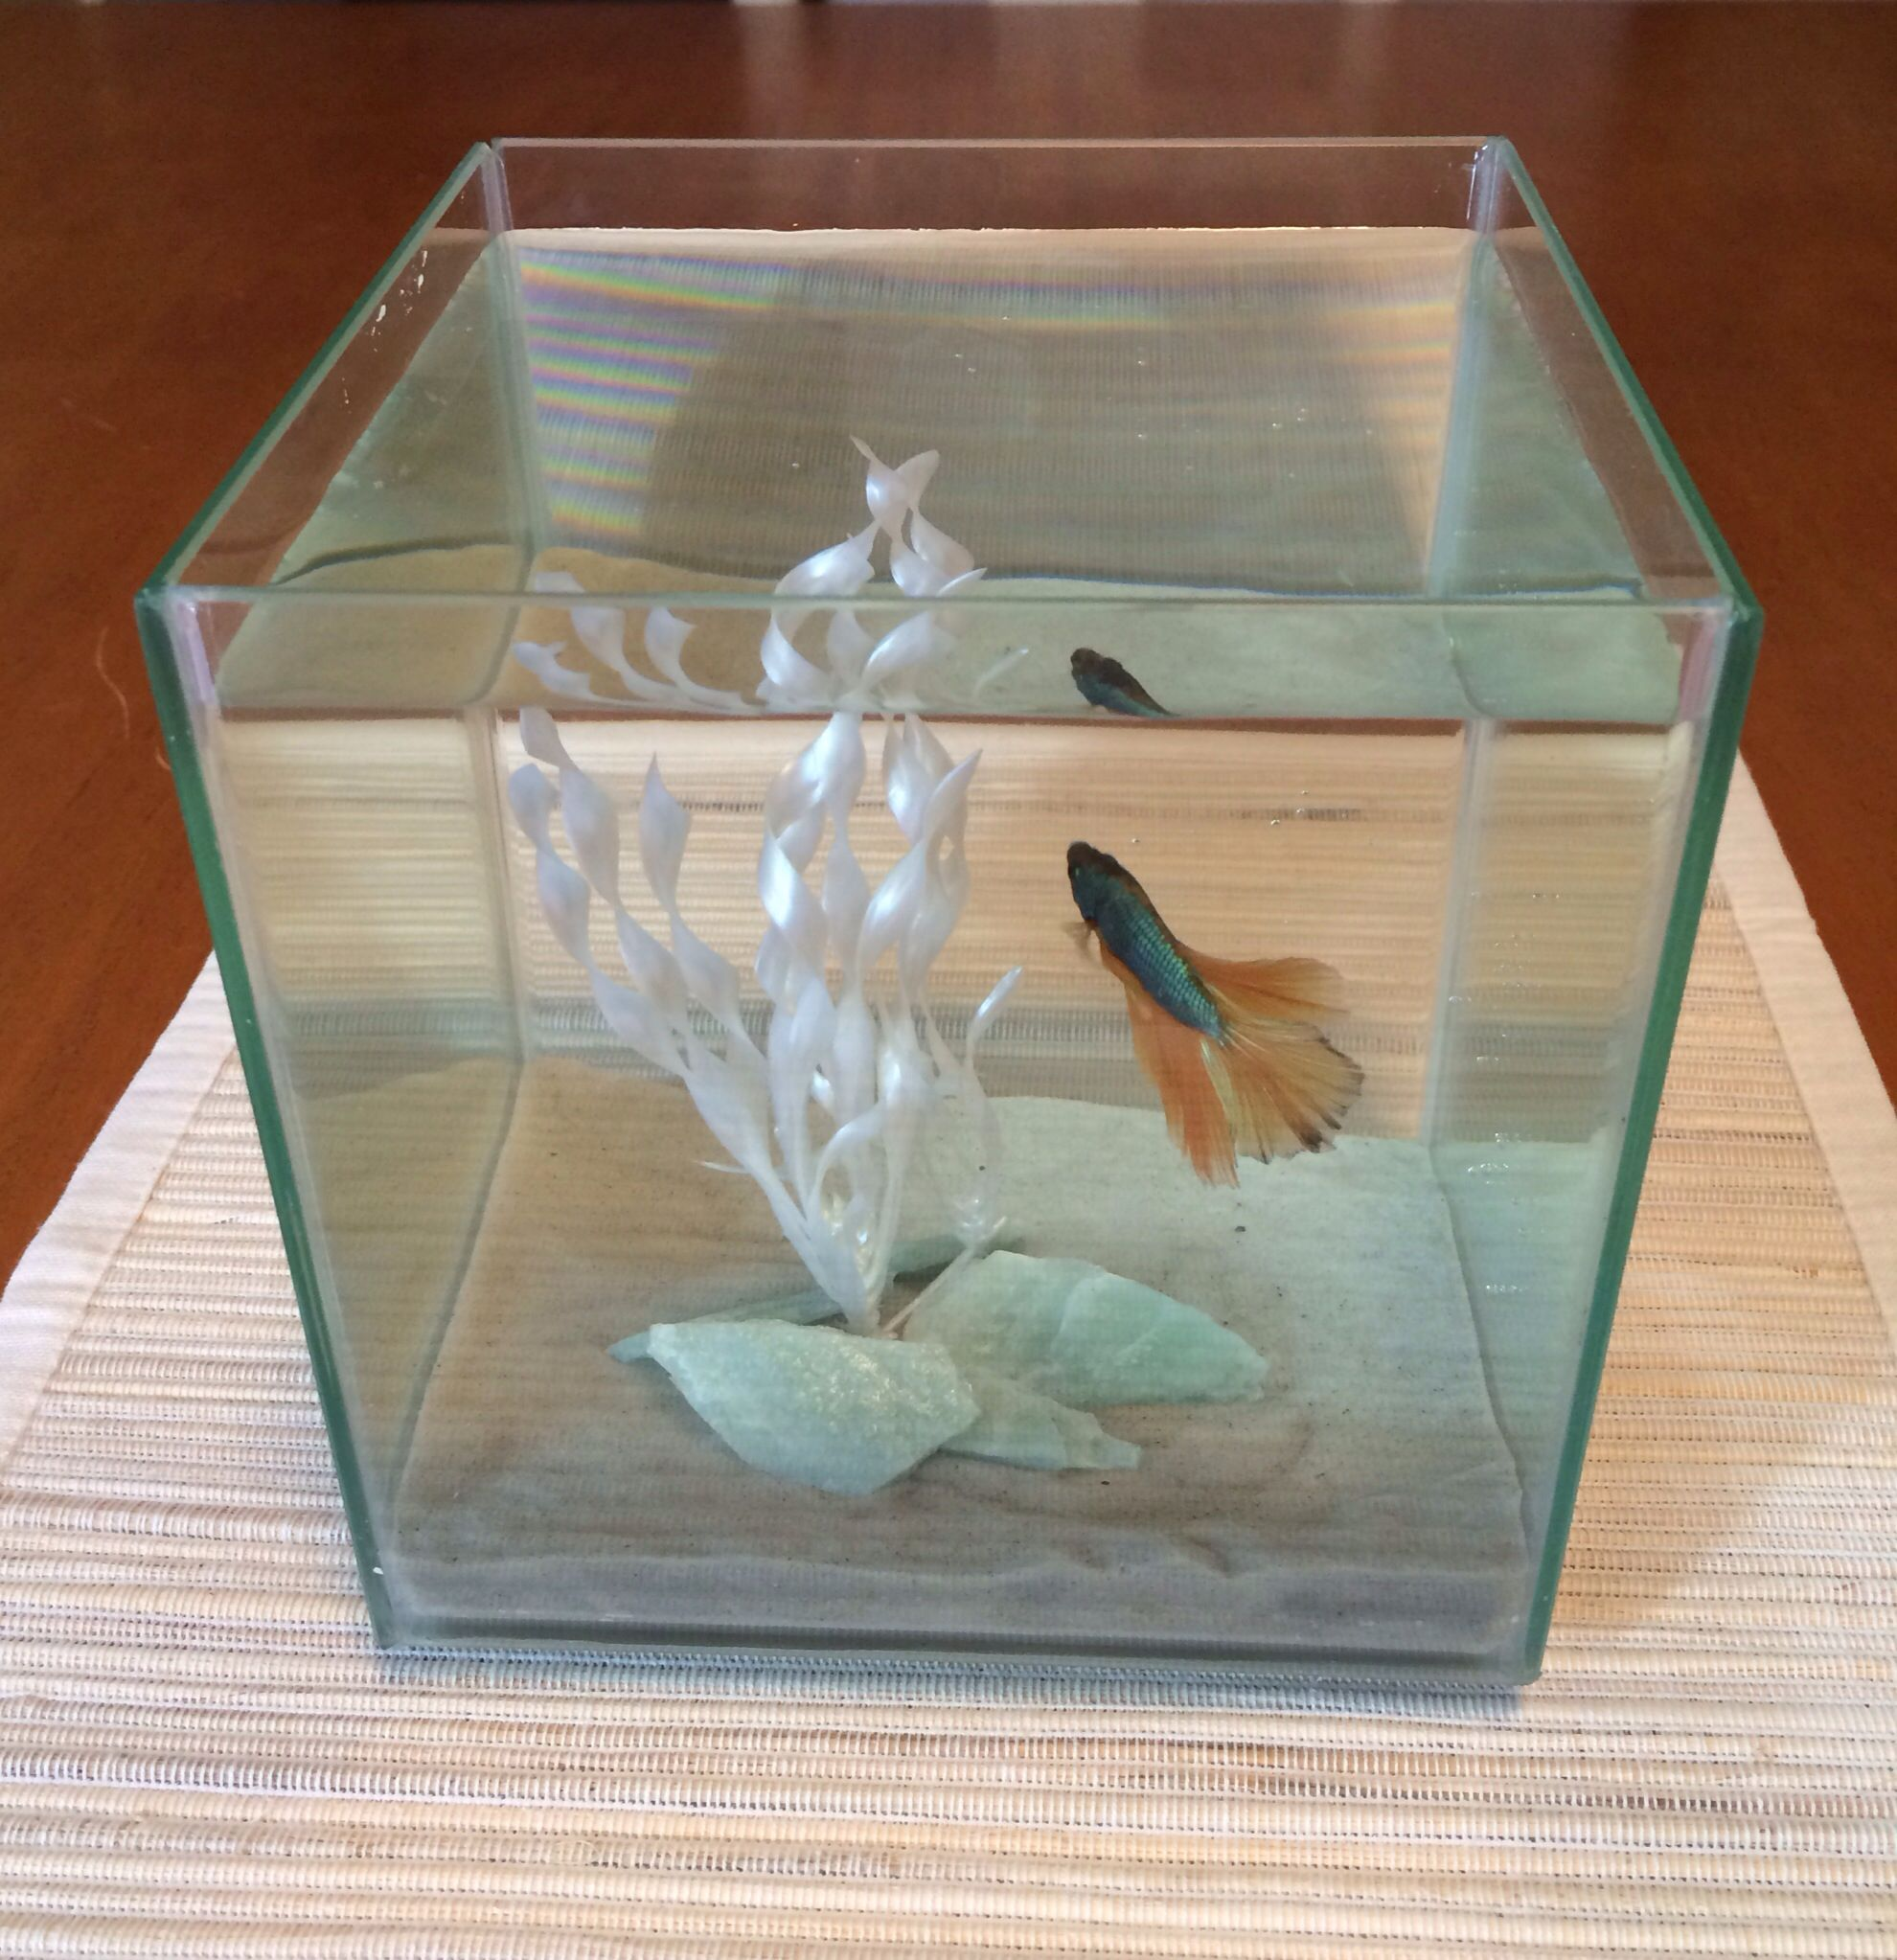 How To Decorate Fish Bowl: Awesome Thanksgiving Table Centerpiece Idea...1/2 Gallon